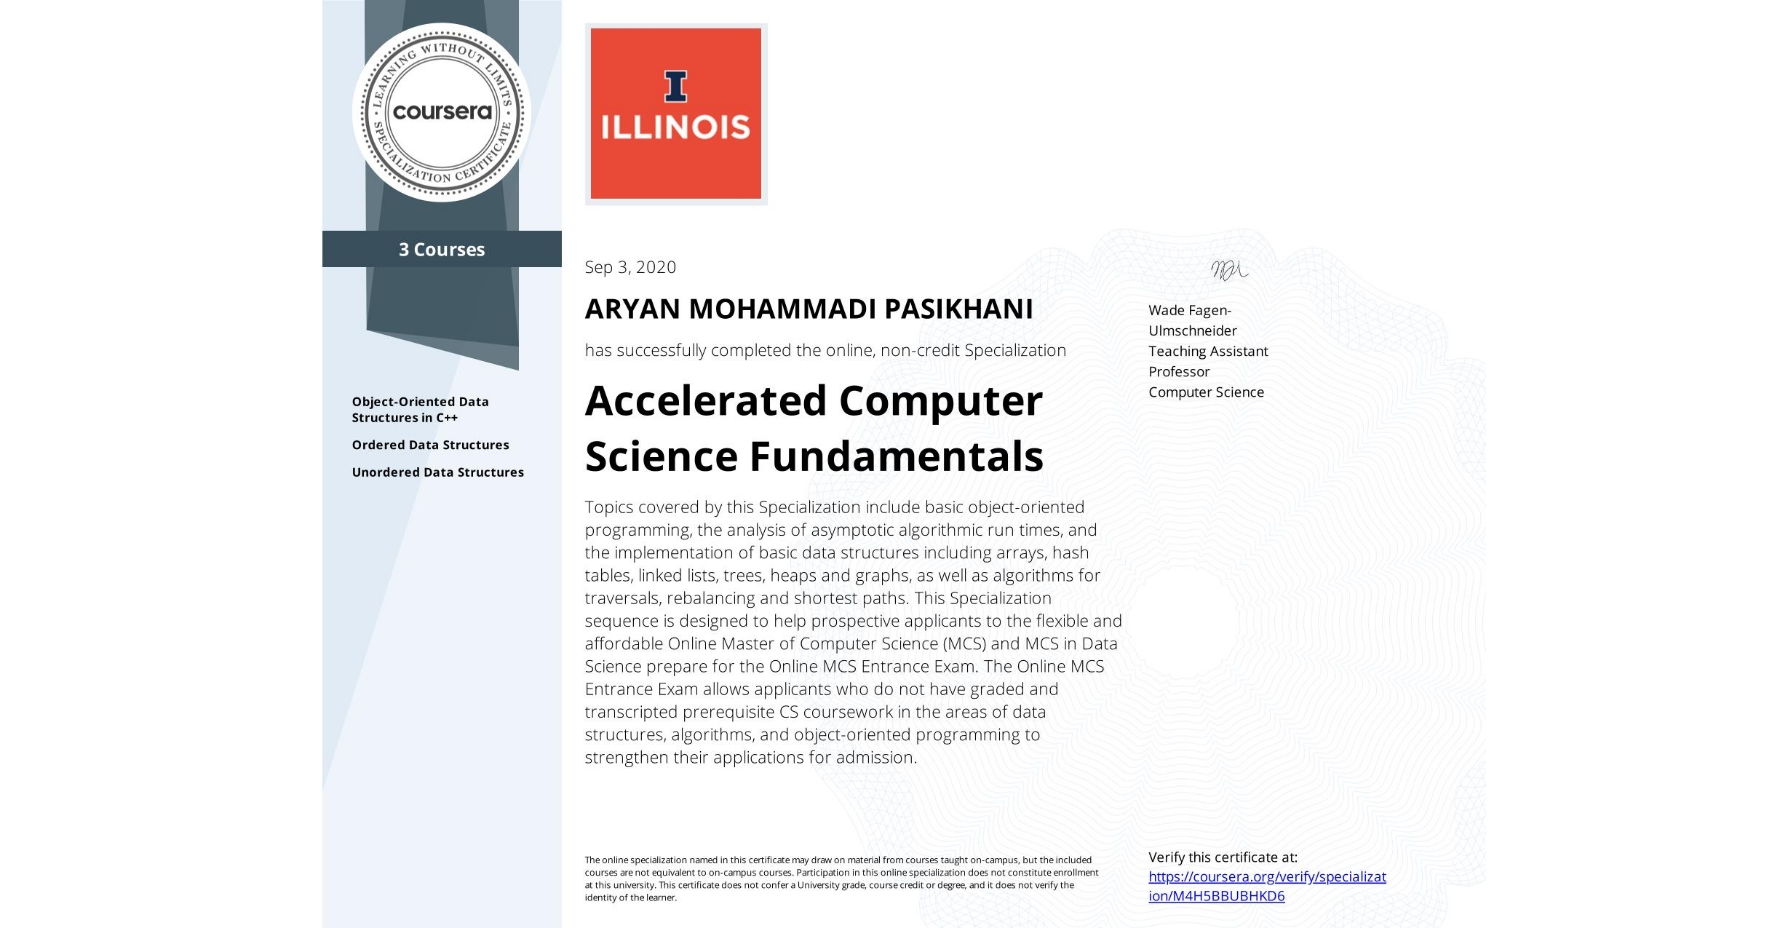 View certificate for ARYAN MOHAMMADI PASIKHANI, Accelerated Computer Science Fundamentals, offered through Coursera. Topics covered by this Specialization include basic object-oriented programming, the analysis of asymptotic algorithmic run times, and the implementation of basic data structures including arrays, hash tables, linked lists, trees, heaps and graphs, as well as algorithms for traversals, rebalancing and shortest paths.  This Specialization sequence is designed to help prospective applicants to the flexible and affordable Online Master of Computer Science (MCS) and MCS in Data Science prepare for the Online MCS Entrance Exam. The Online MCS Entrance Exam allows applicants who do not have graded and transcripted prerequisite CS coursework in the areas of data structures, algorithms, and object-oriented programming to strengthen their applications for admission.